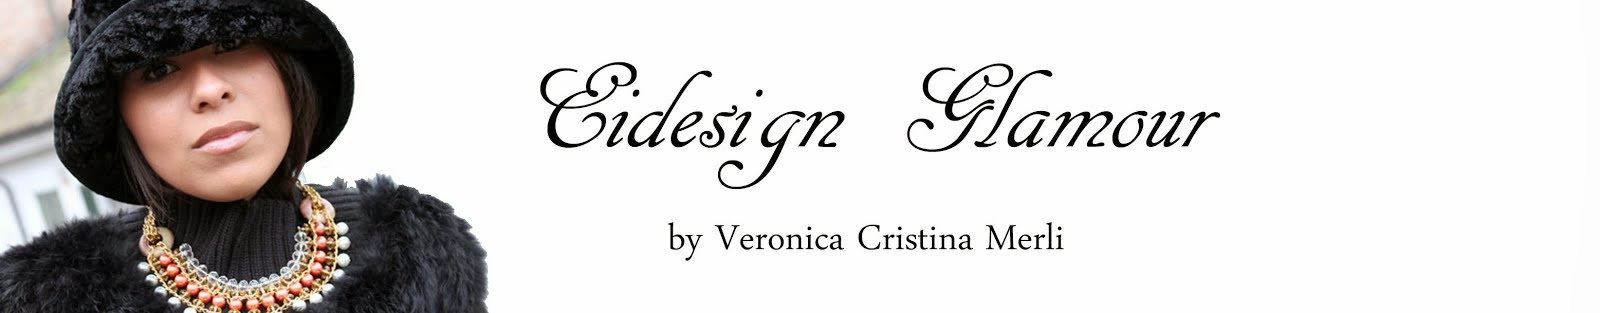 EIDesign Glamour - di Veronica Cristina Merli - Fashion Blogger